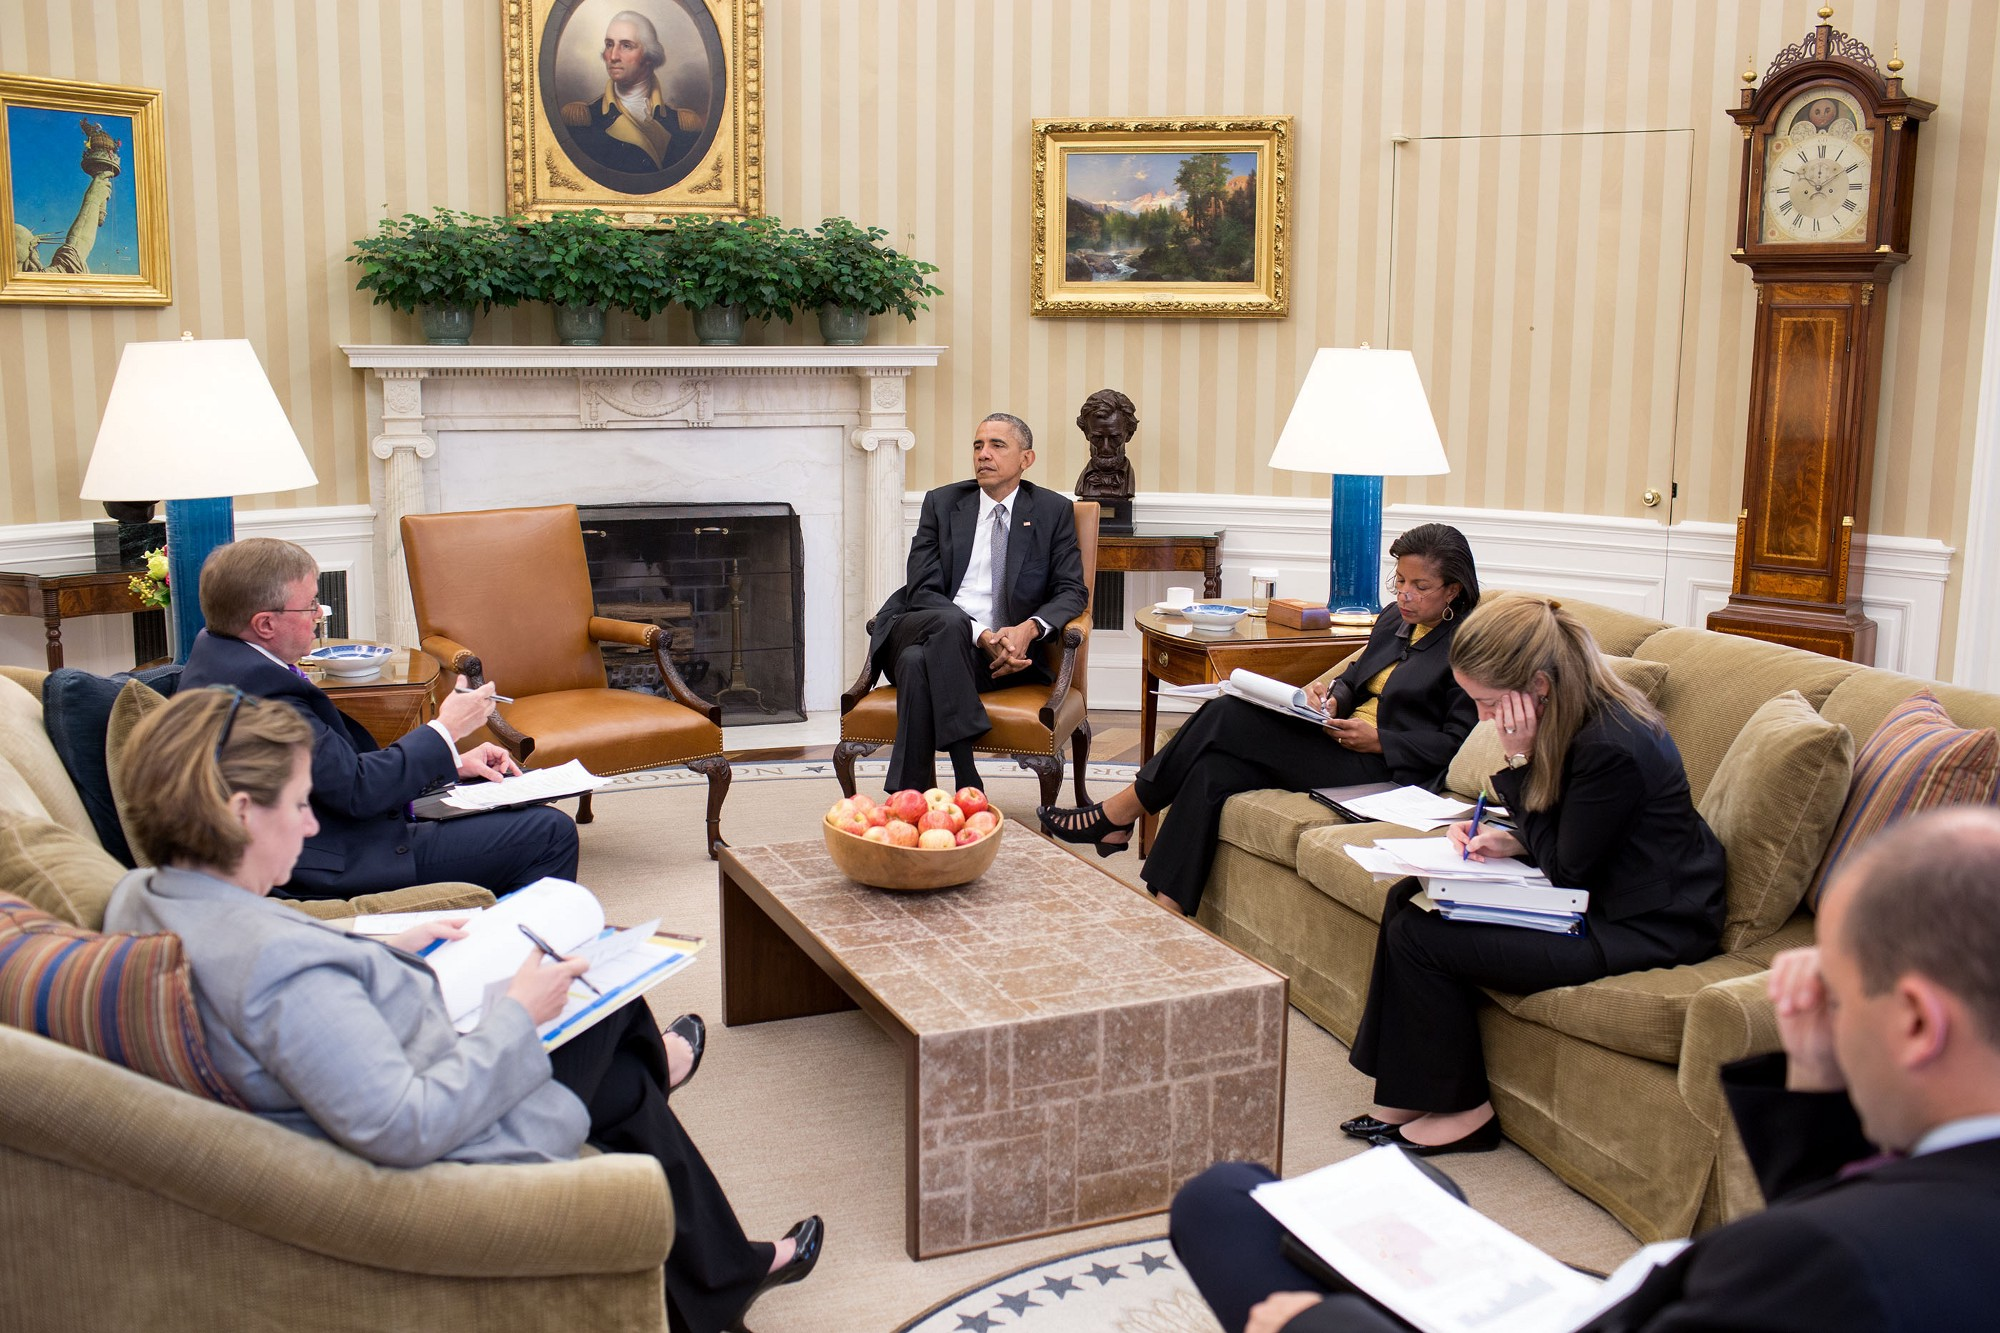 obama oval office. Behind The Lens: When President Heard News Of Supreme Court Decision On Affordable Care Act. Obama Receives Presidential Oval Office